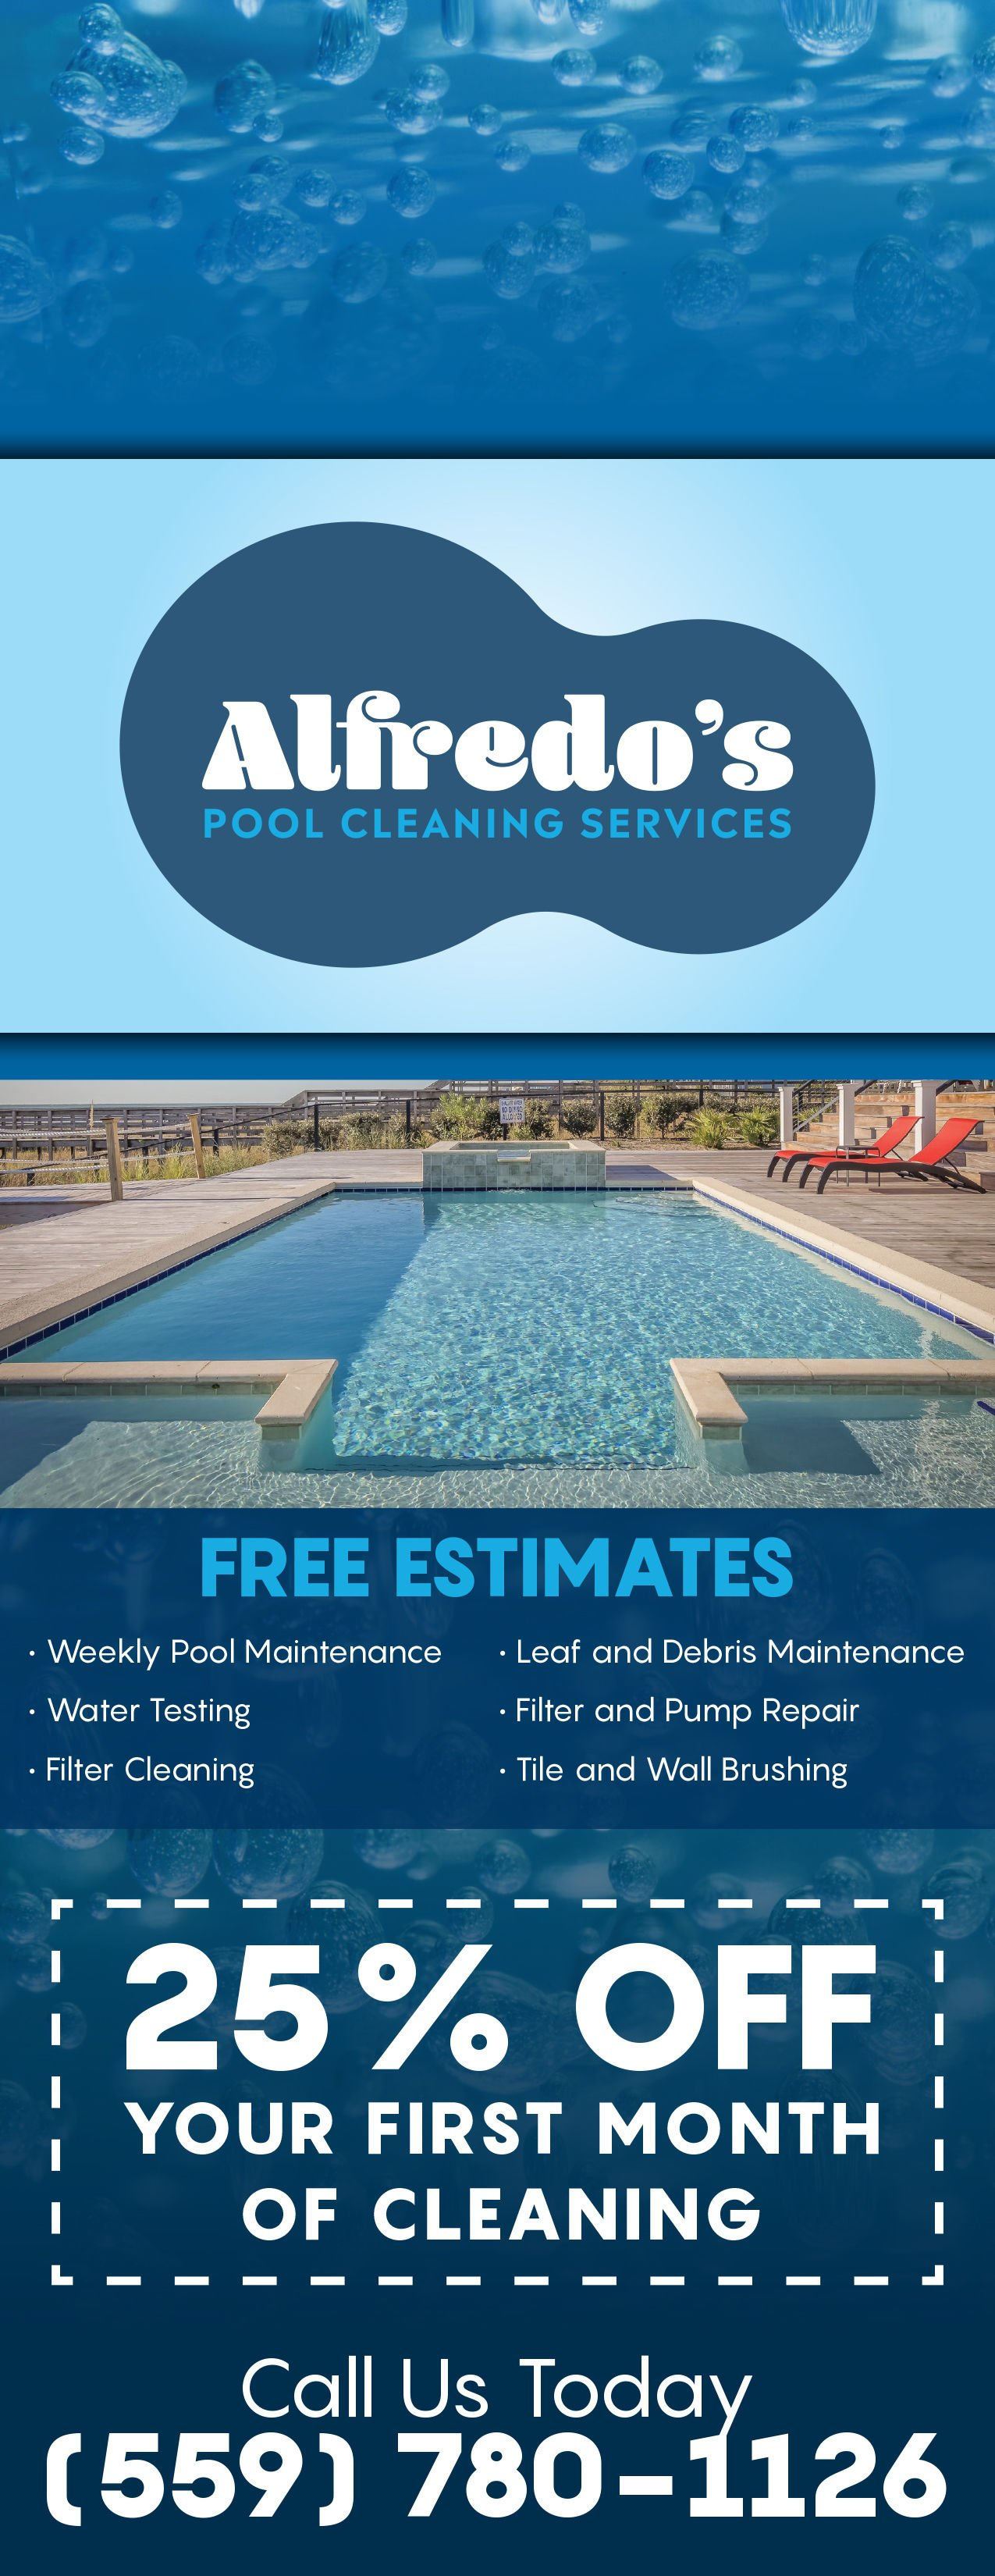 Alfredo's Pool Cleaning Services image 1